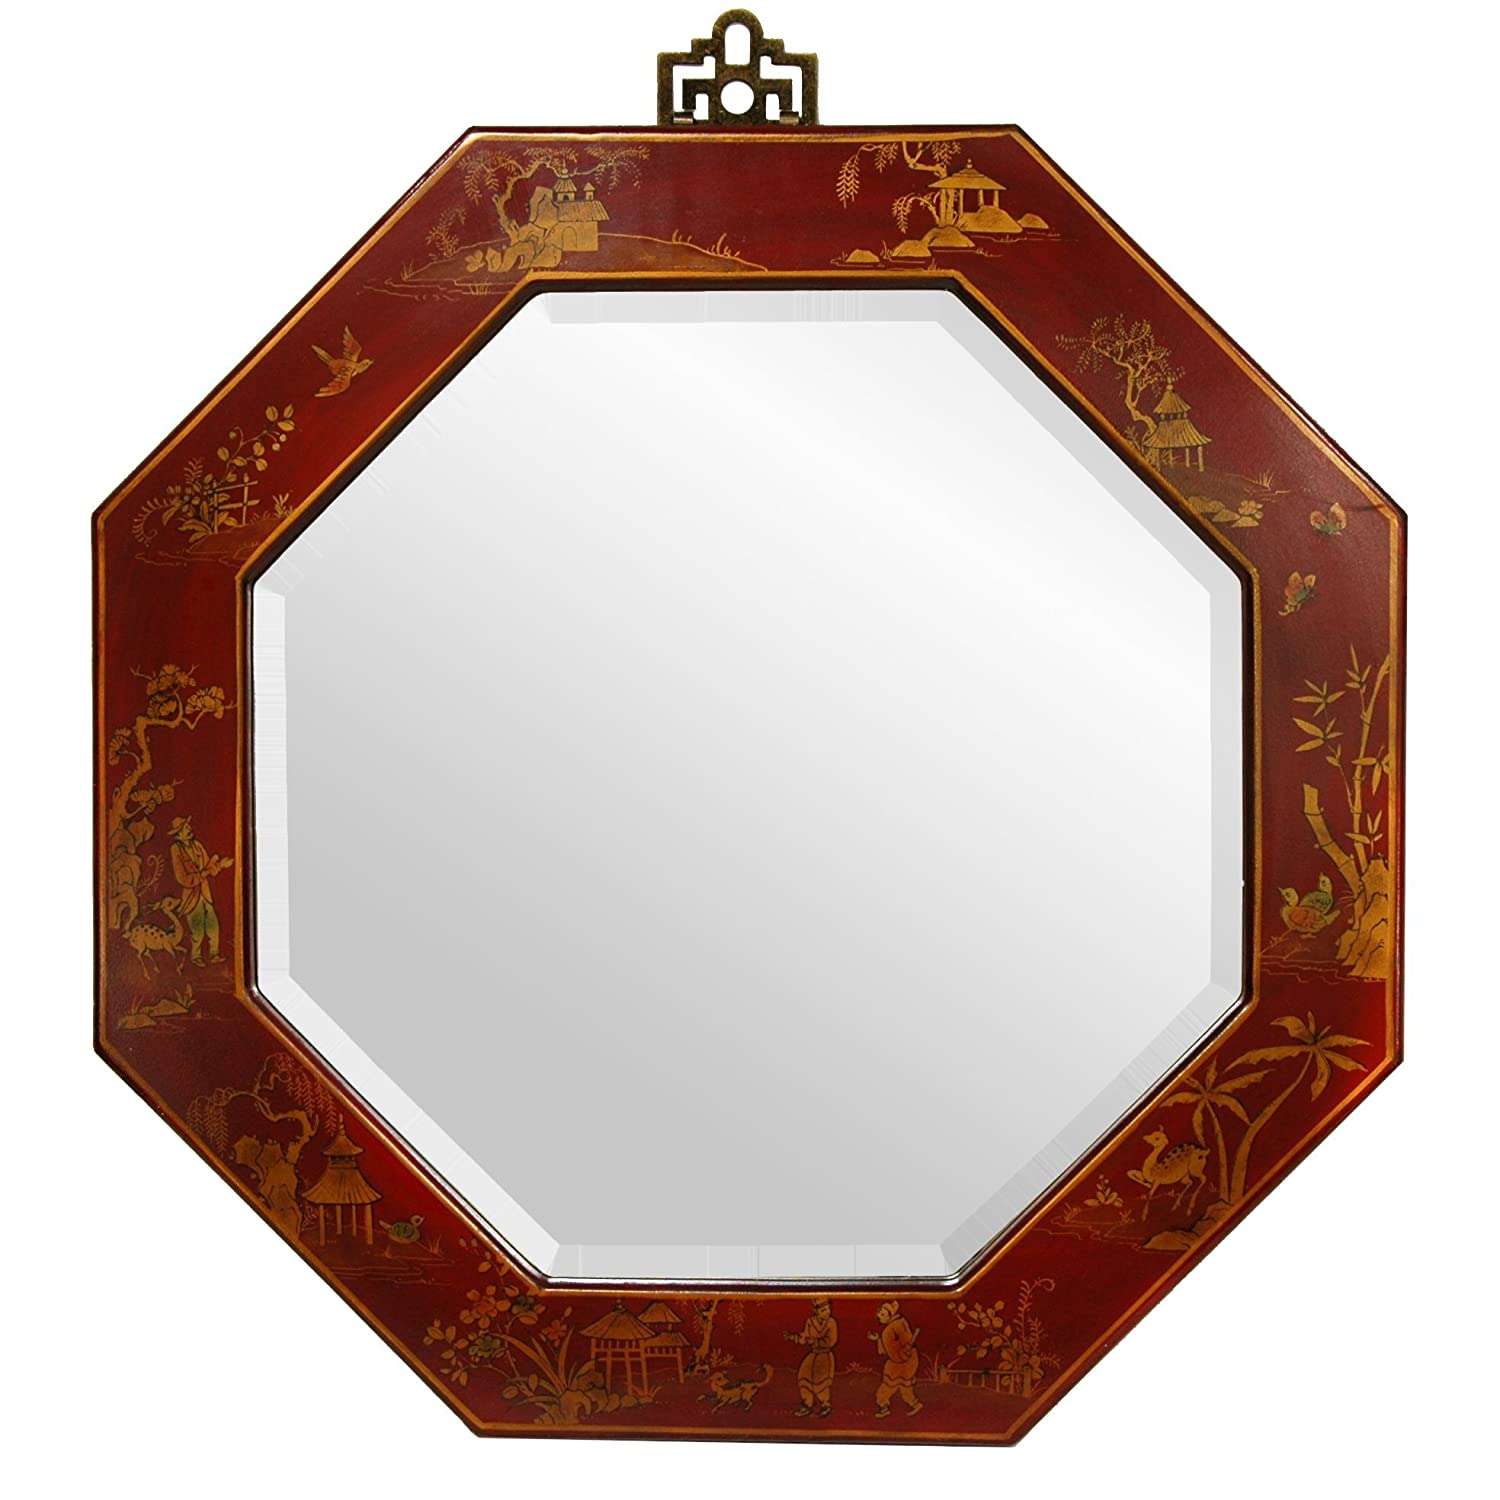 Amazon oriental furniture red lacquer octagonal mirror home amazon oriental furniture red lacquer octagonal mirror home kitchen amipublicfo Choice Image